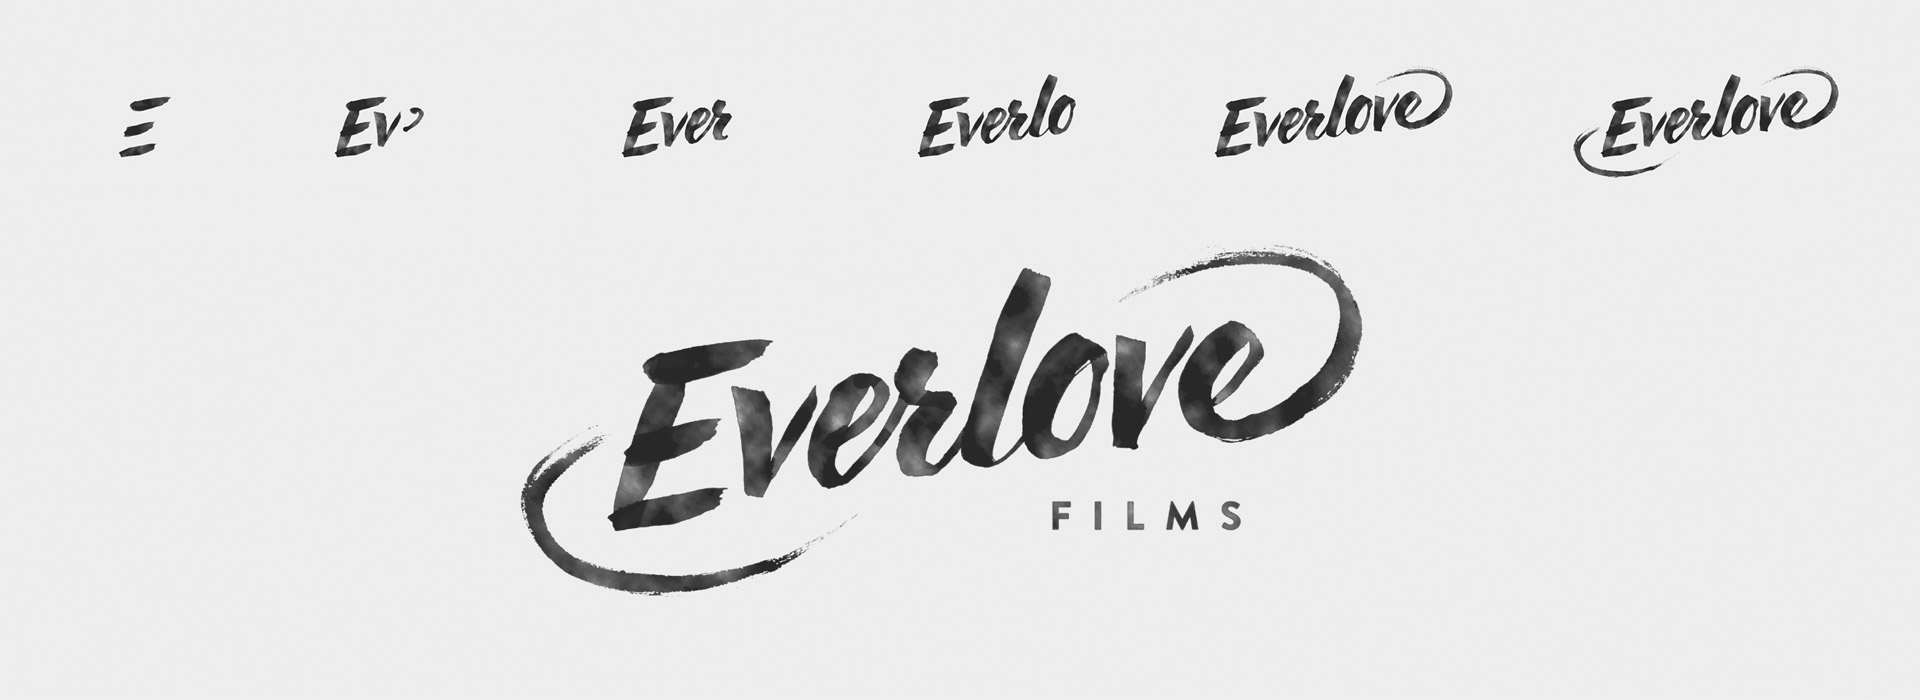 Everlove_LogoAnimation